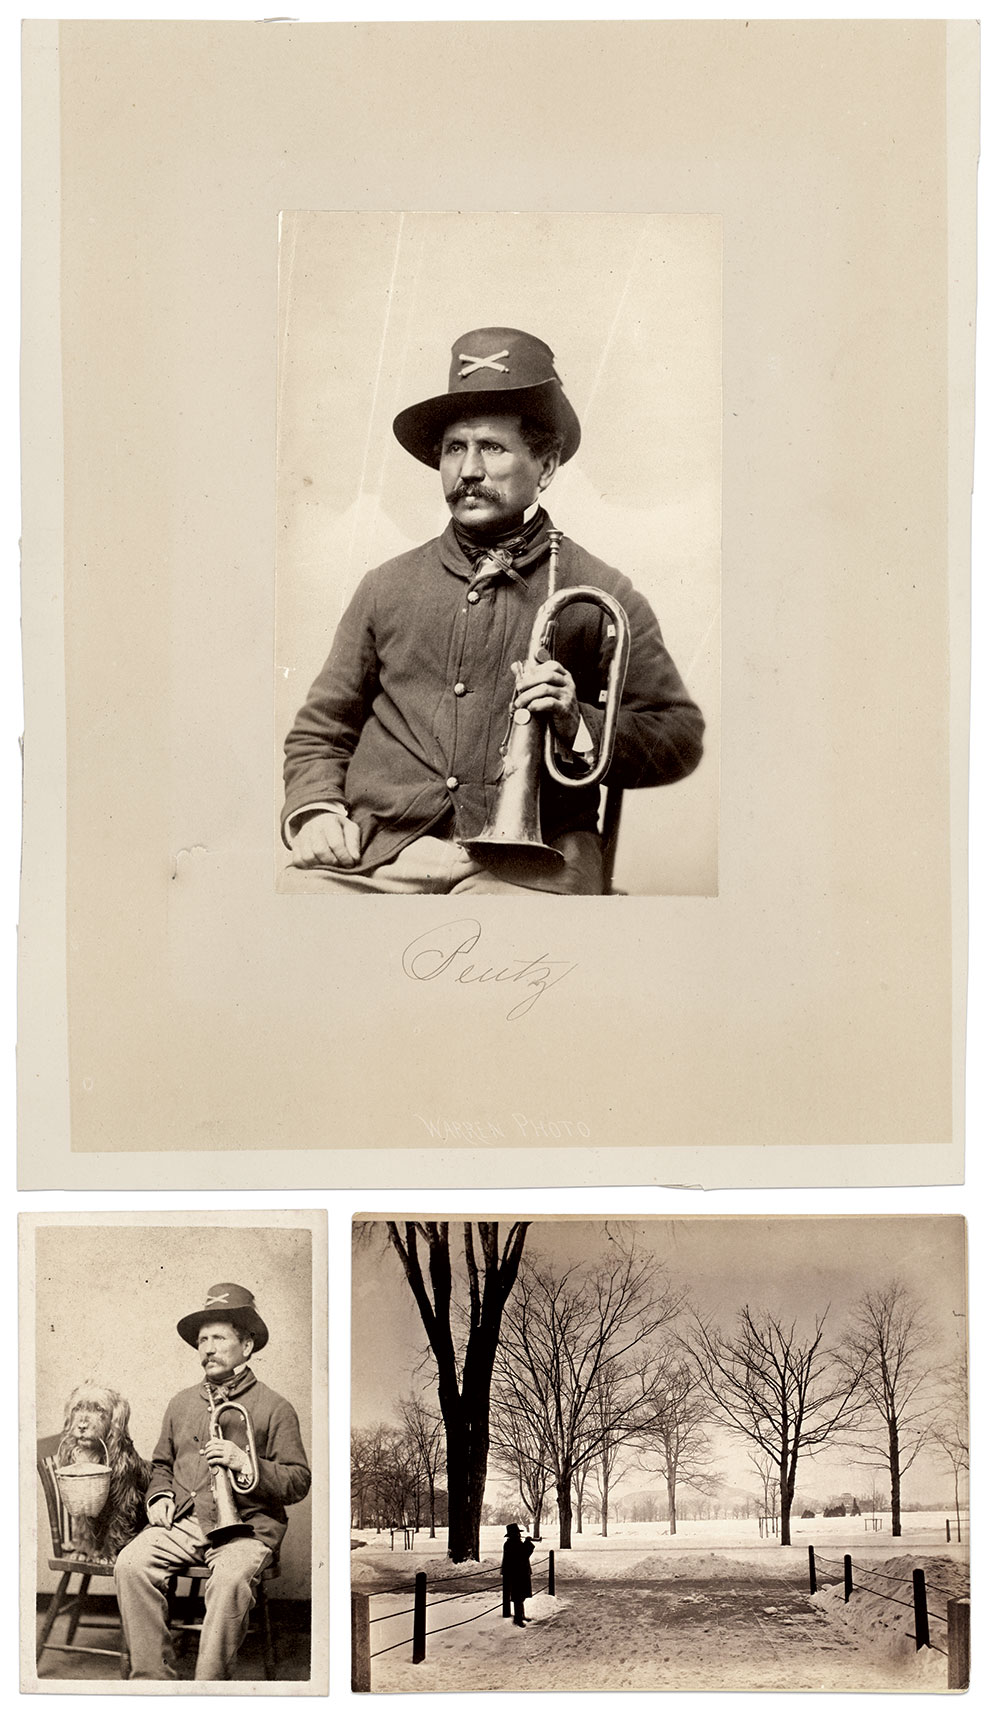 Clockwise from top: Bentz on the grounds of West Point towards the end of his storied career. Albumen print by an unidentified photographer. Buck Zaidel Collection; Bentz. Albumen print by an unidentified photographer. Chris Nelson Collection. Bentz and Hans, circa 1865. Bentz holds a B-flat keyed bugle, which, by the time of the Civil War, was no longer a standard band instrument. The crossed cannons insignia on his hat marks his membership in the artillery. Carte de visite by Warren of Cambridgeport, Mass. Chris Nelson Collection.